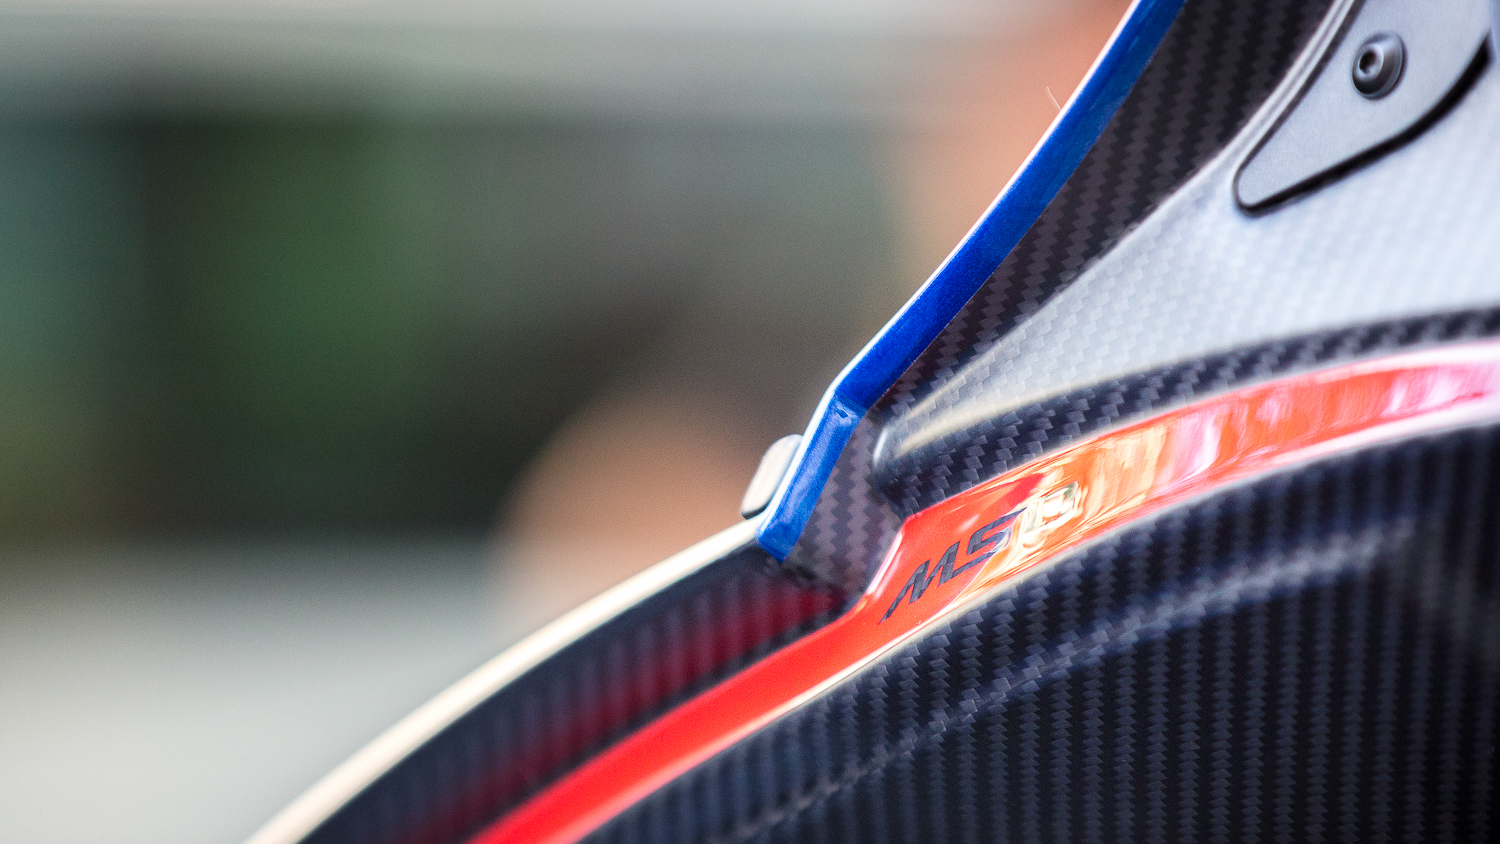 SMoores_15-06-12_Le Mans_0172-Edit.jpg